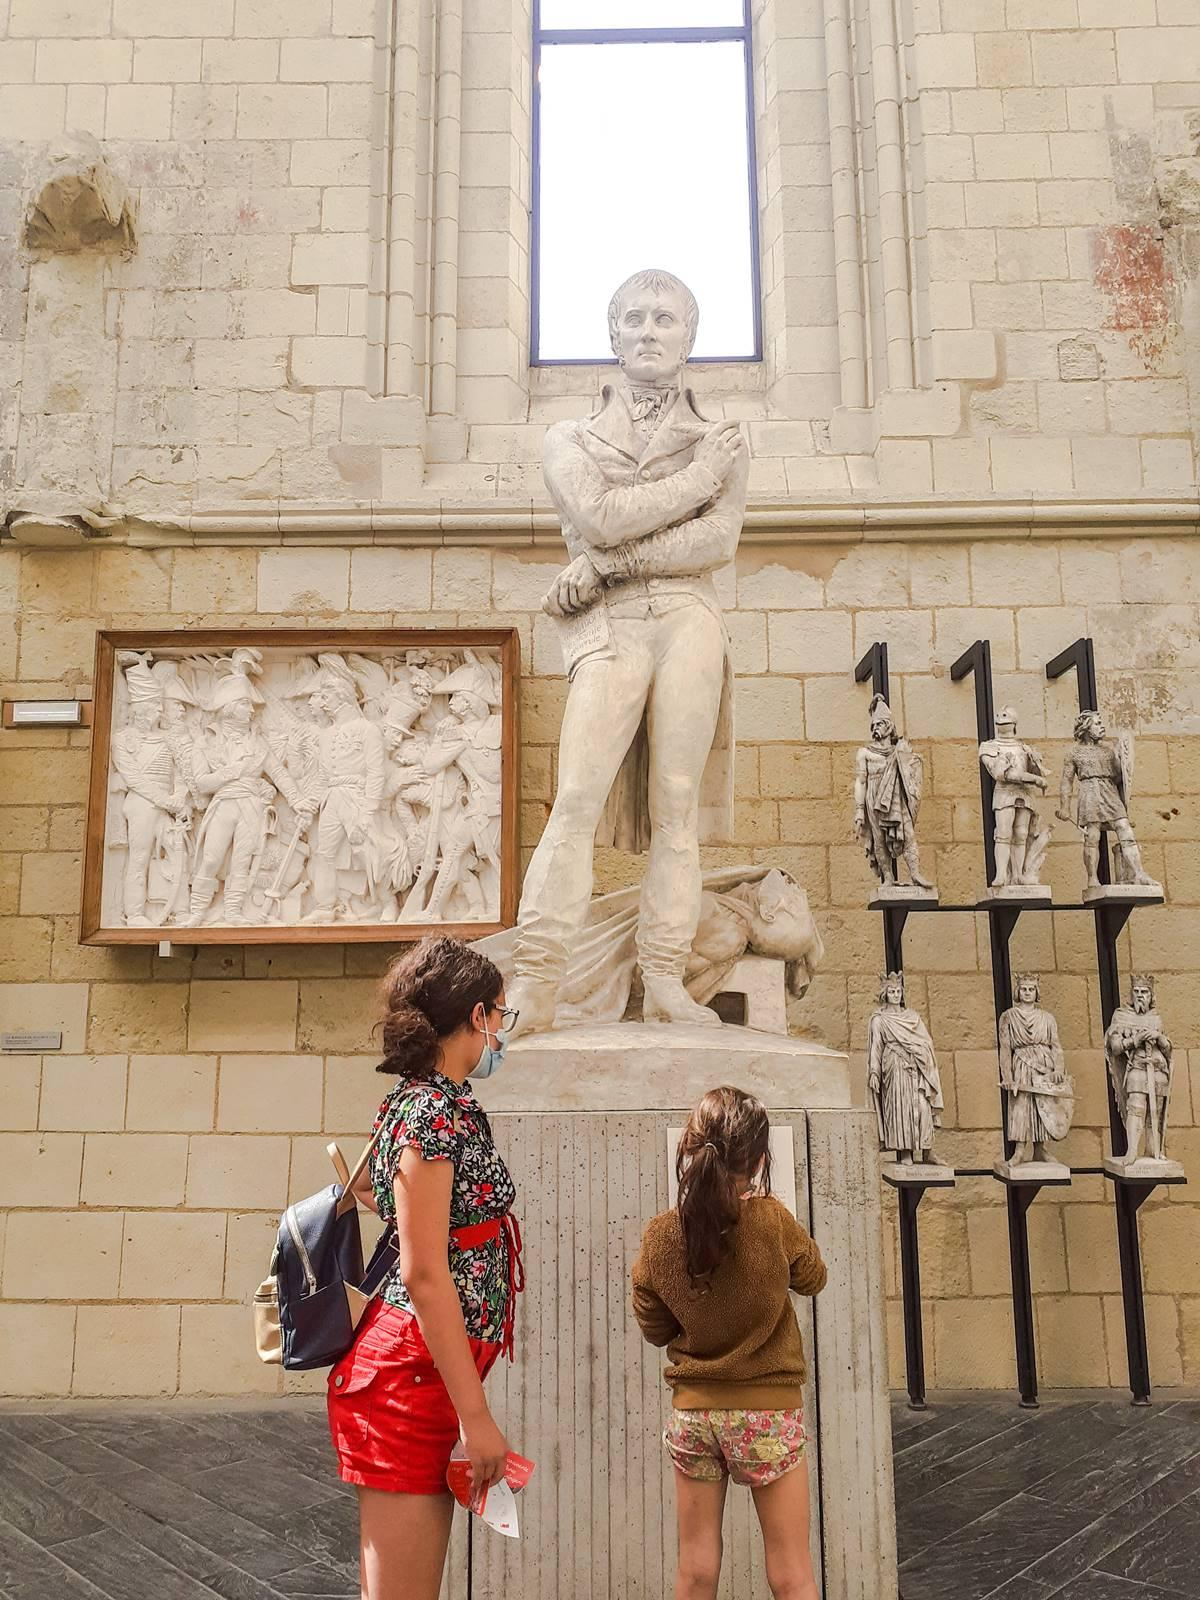 On a visite le musee david d angers a angerspsx 20210724 161806